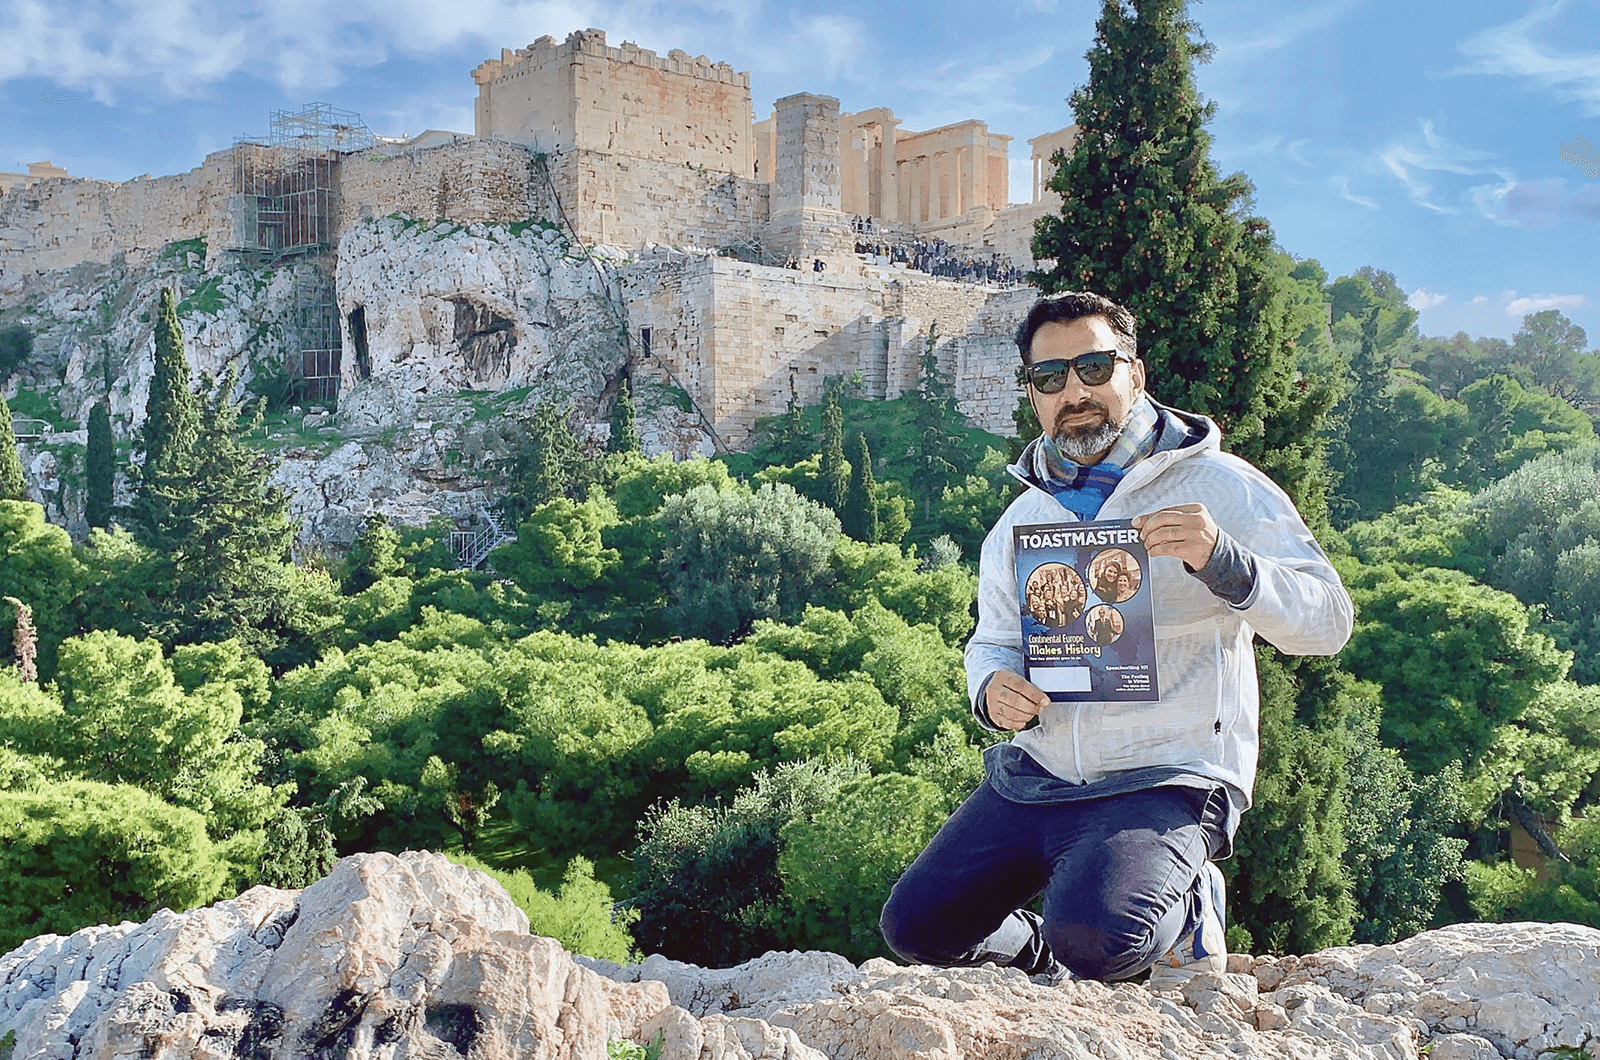 Amjad Ali of Dubai, United Arab Emirates, sits below the Acropolis of Athens, Greece, an ancient citadel perched above the city.